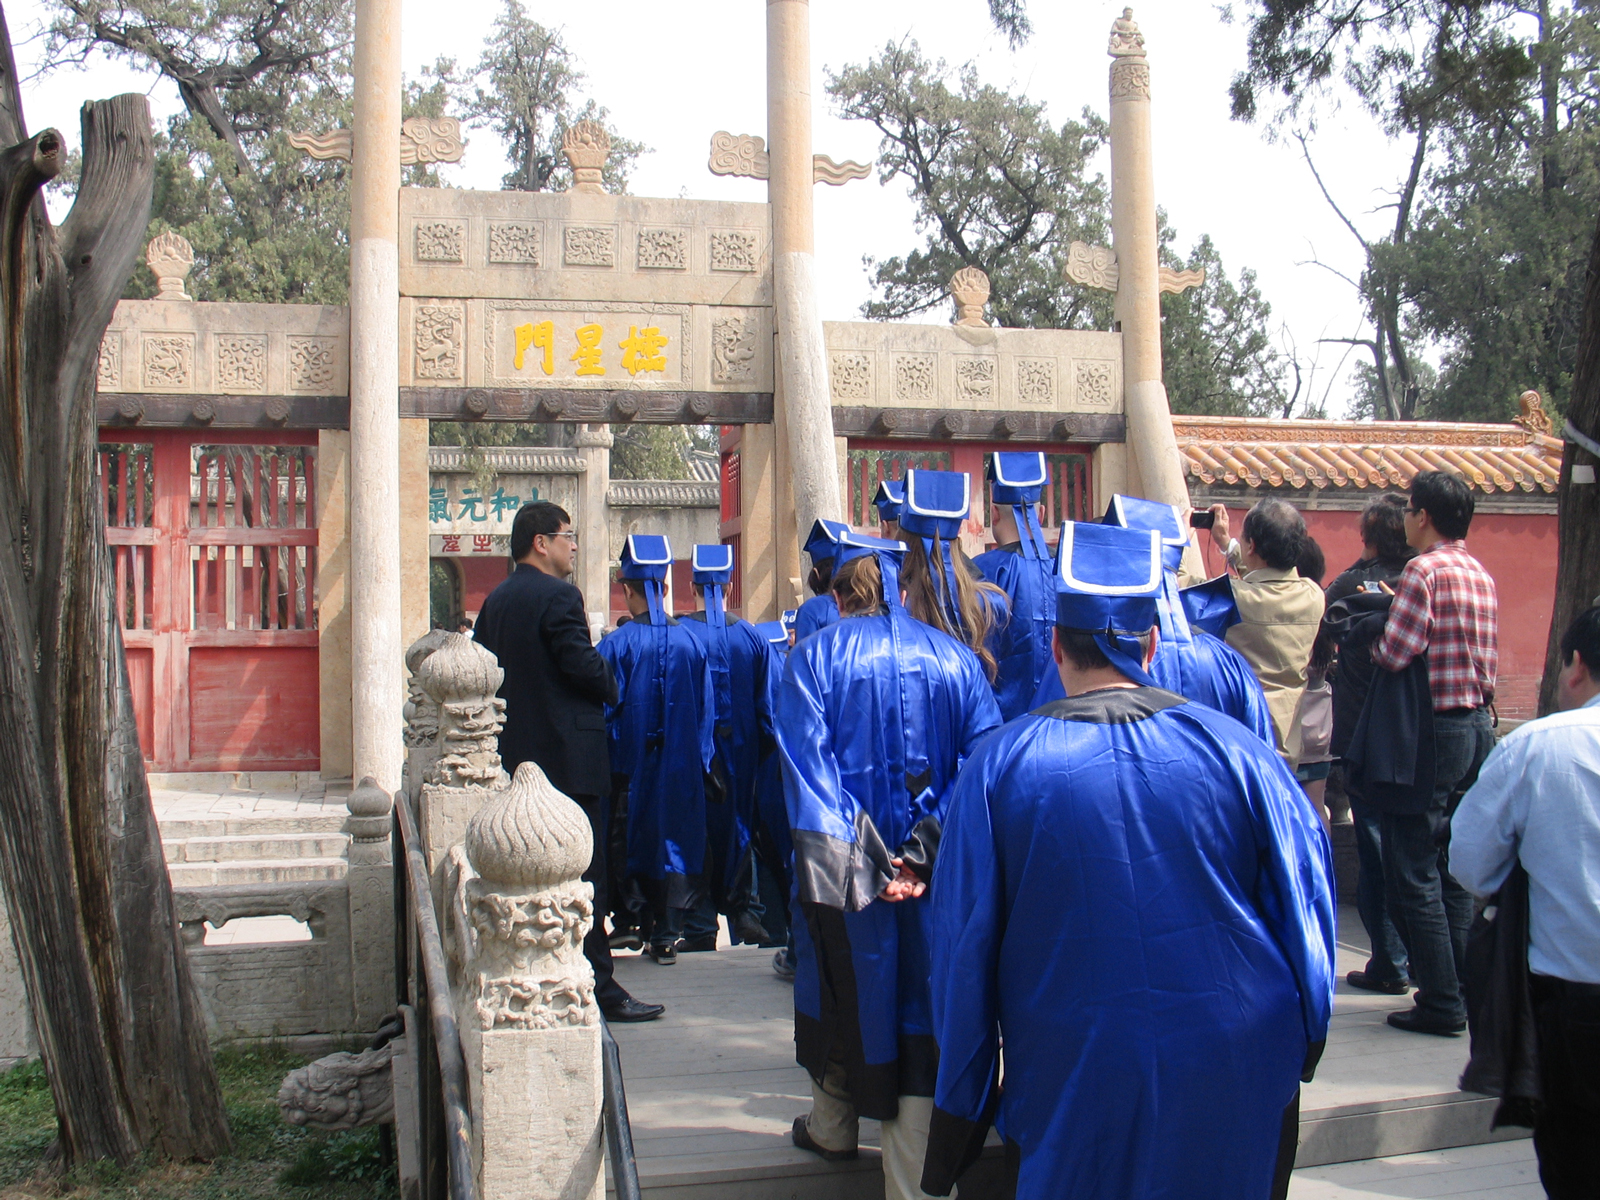 Students from a Confucius Institute in the US visiting the Confucius Temple in Qufu, China, April 17, 2013